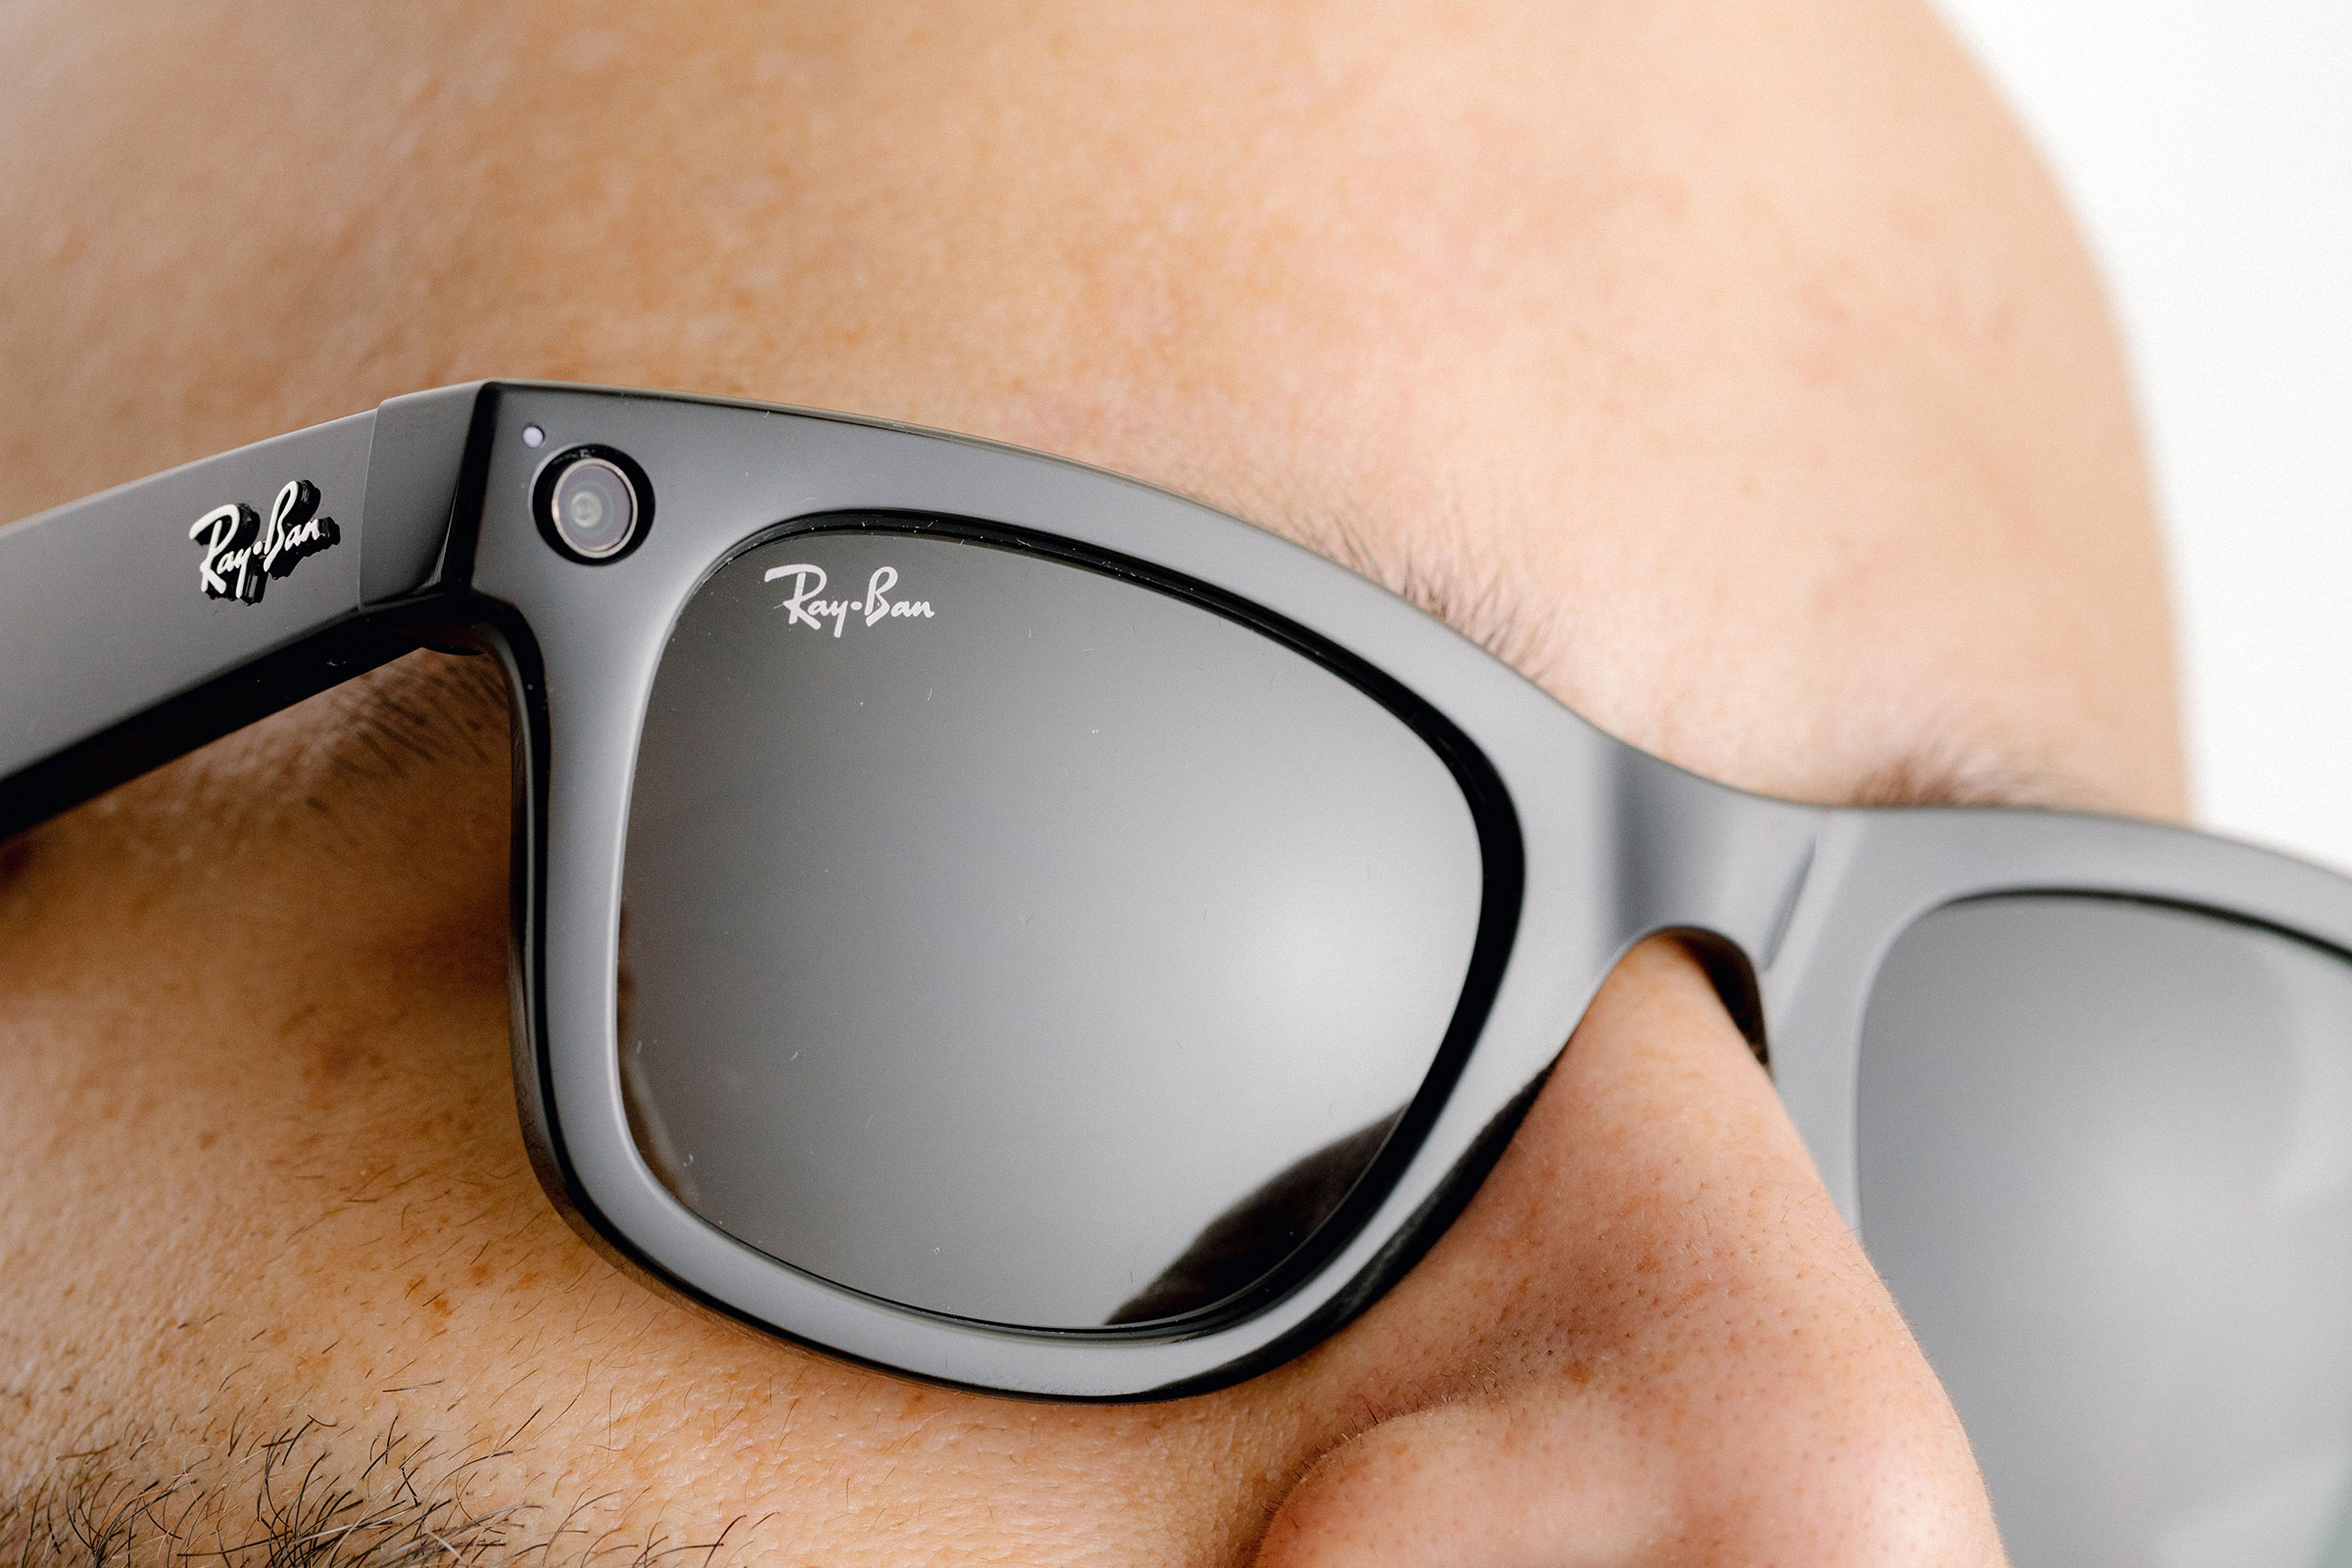 The Ray-Ban Stories, a new line of eyewear by Facebook and Ray-Ban, in San Francisco on Sept. 8, 2021. Facebook has teamed up with Ray-Ban to create glasses that can take photos, record video, answer phone calls and play podcasts.